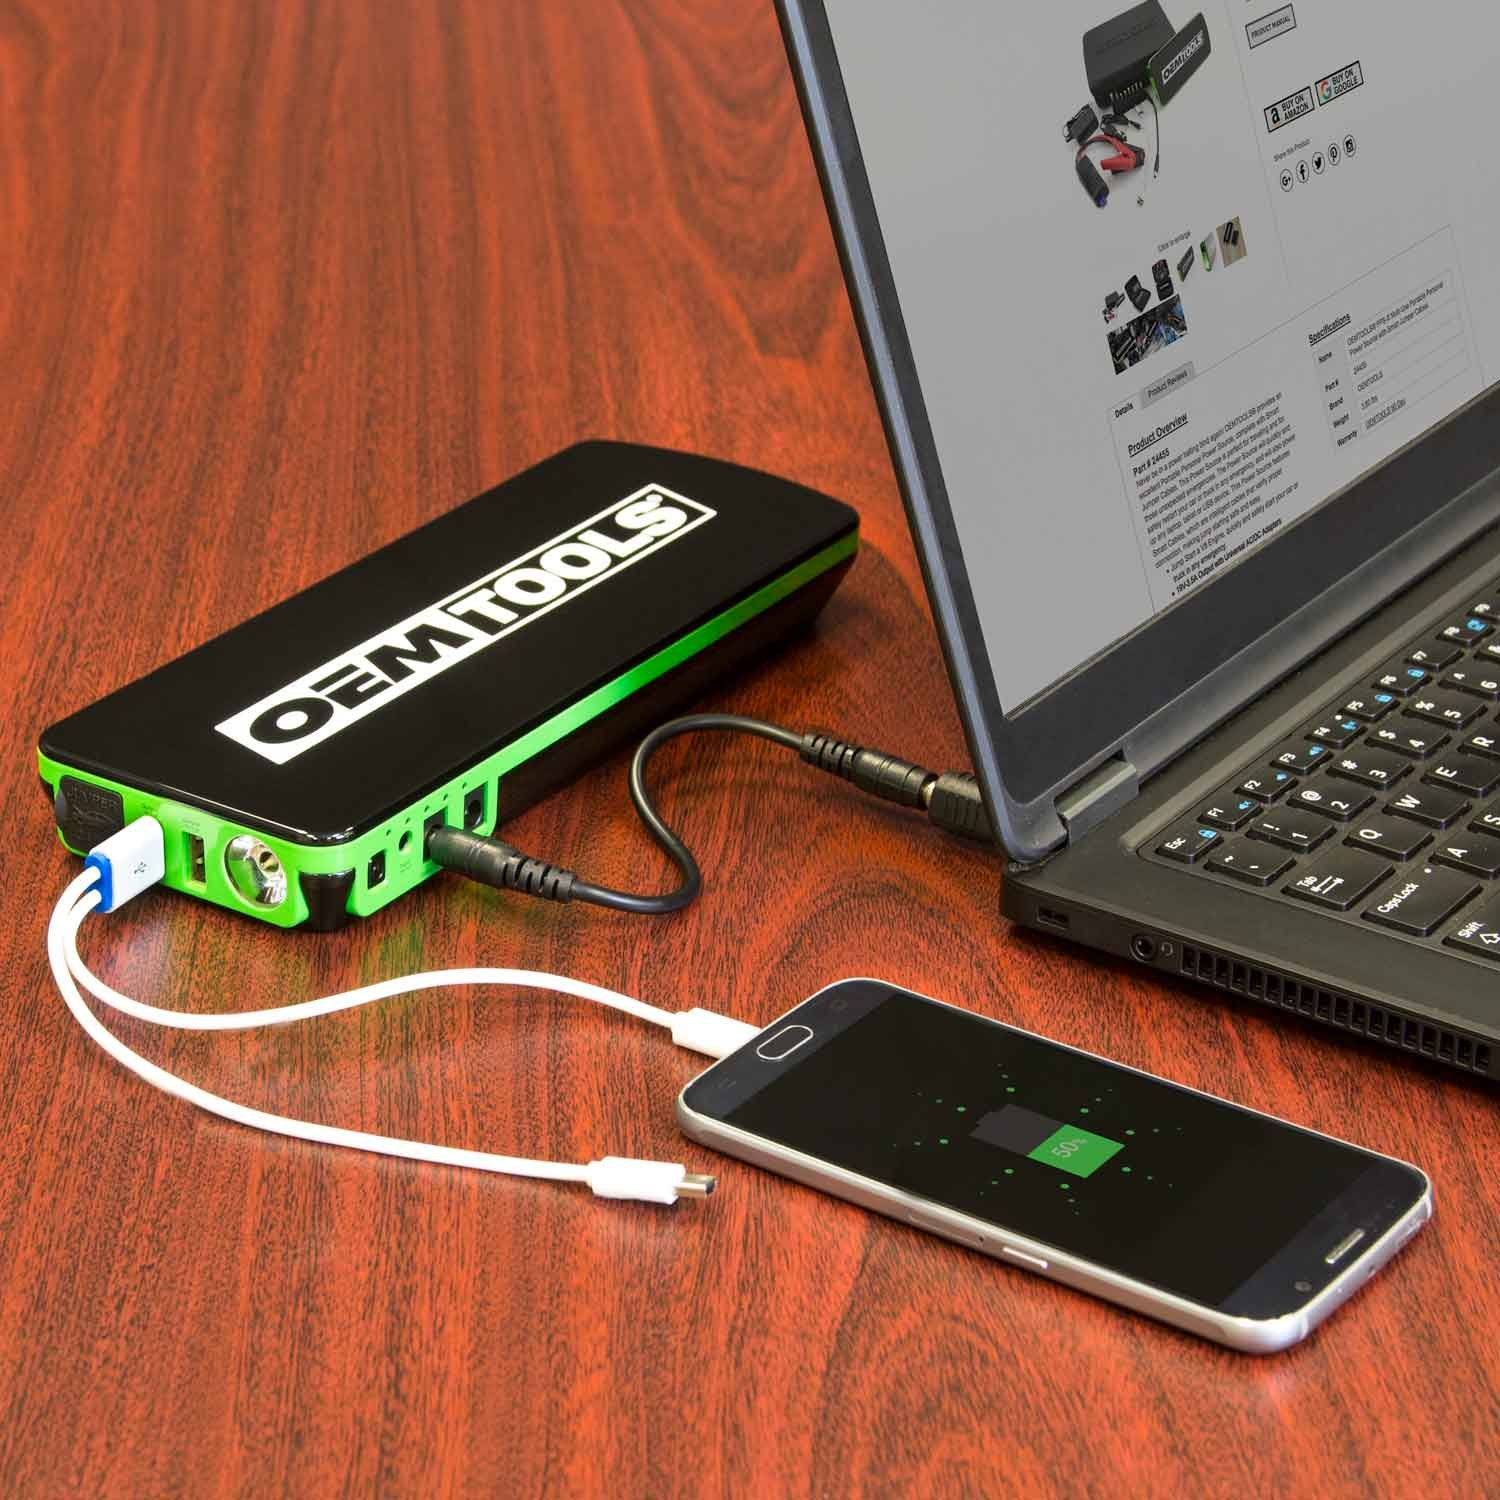 OEMTOOLS 24455 PPS-X Personal Power Source with Smart Jump Cables by OEMTOOLS (Image #6)